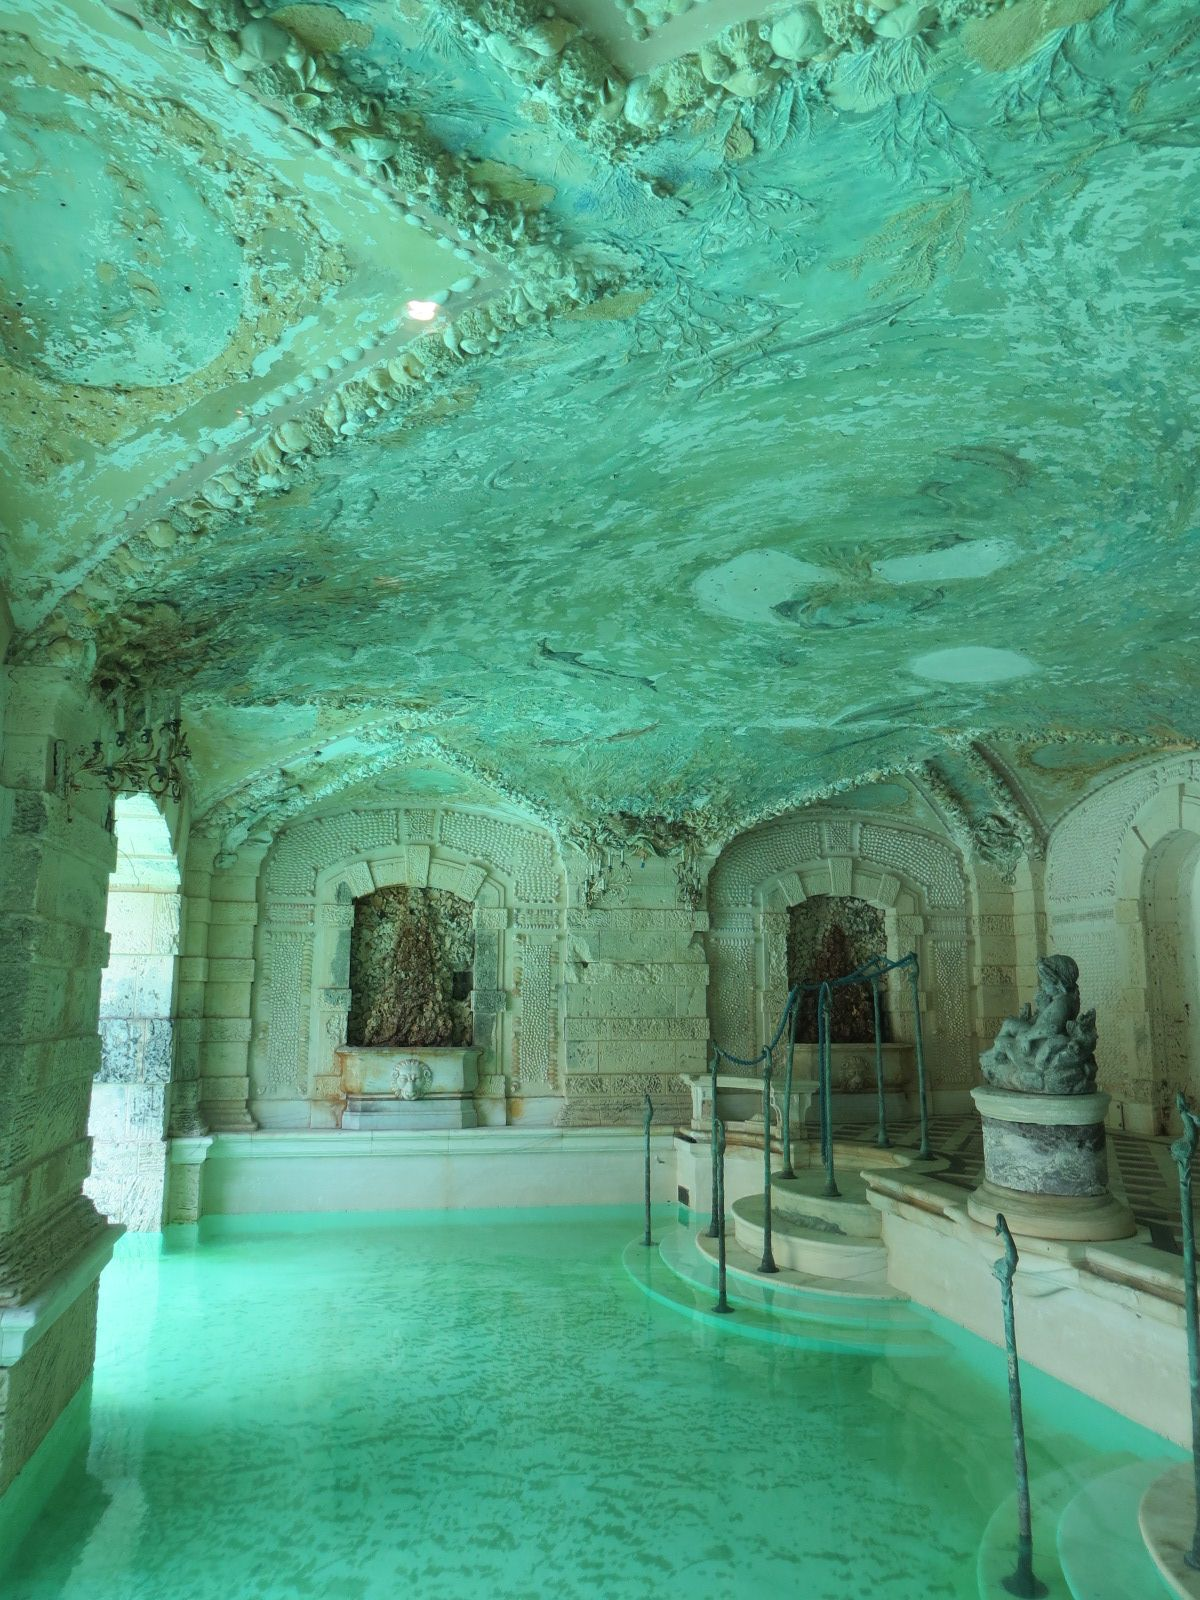 Image From Http Www Intiyana Com Z 2014 10 Home Decor Interior Architecture Cave Theme Decoration Indoor Pool In H Dream Pools Fairytale Room Beautiful Pools